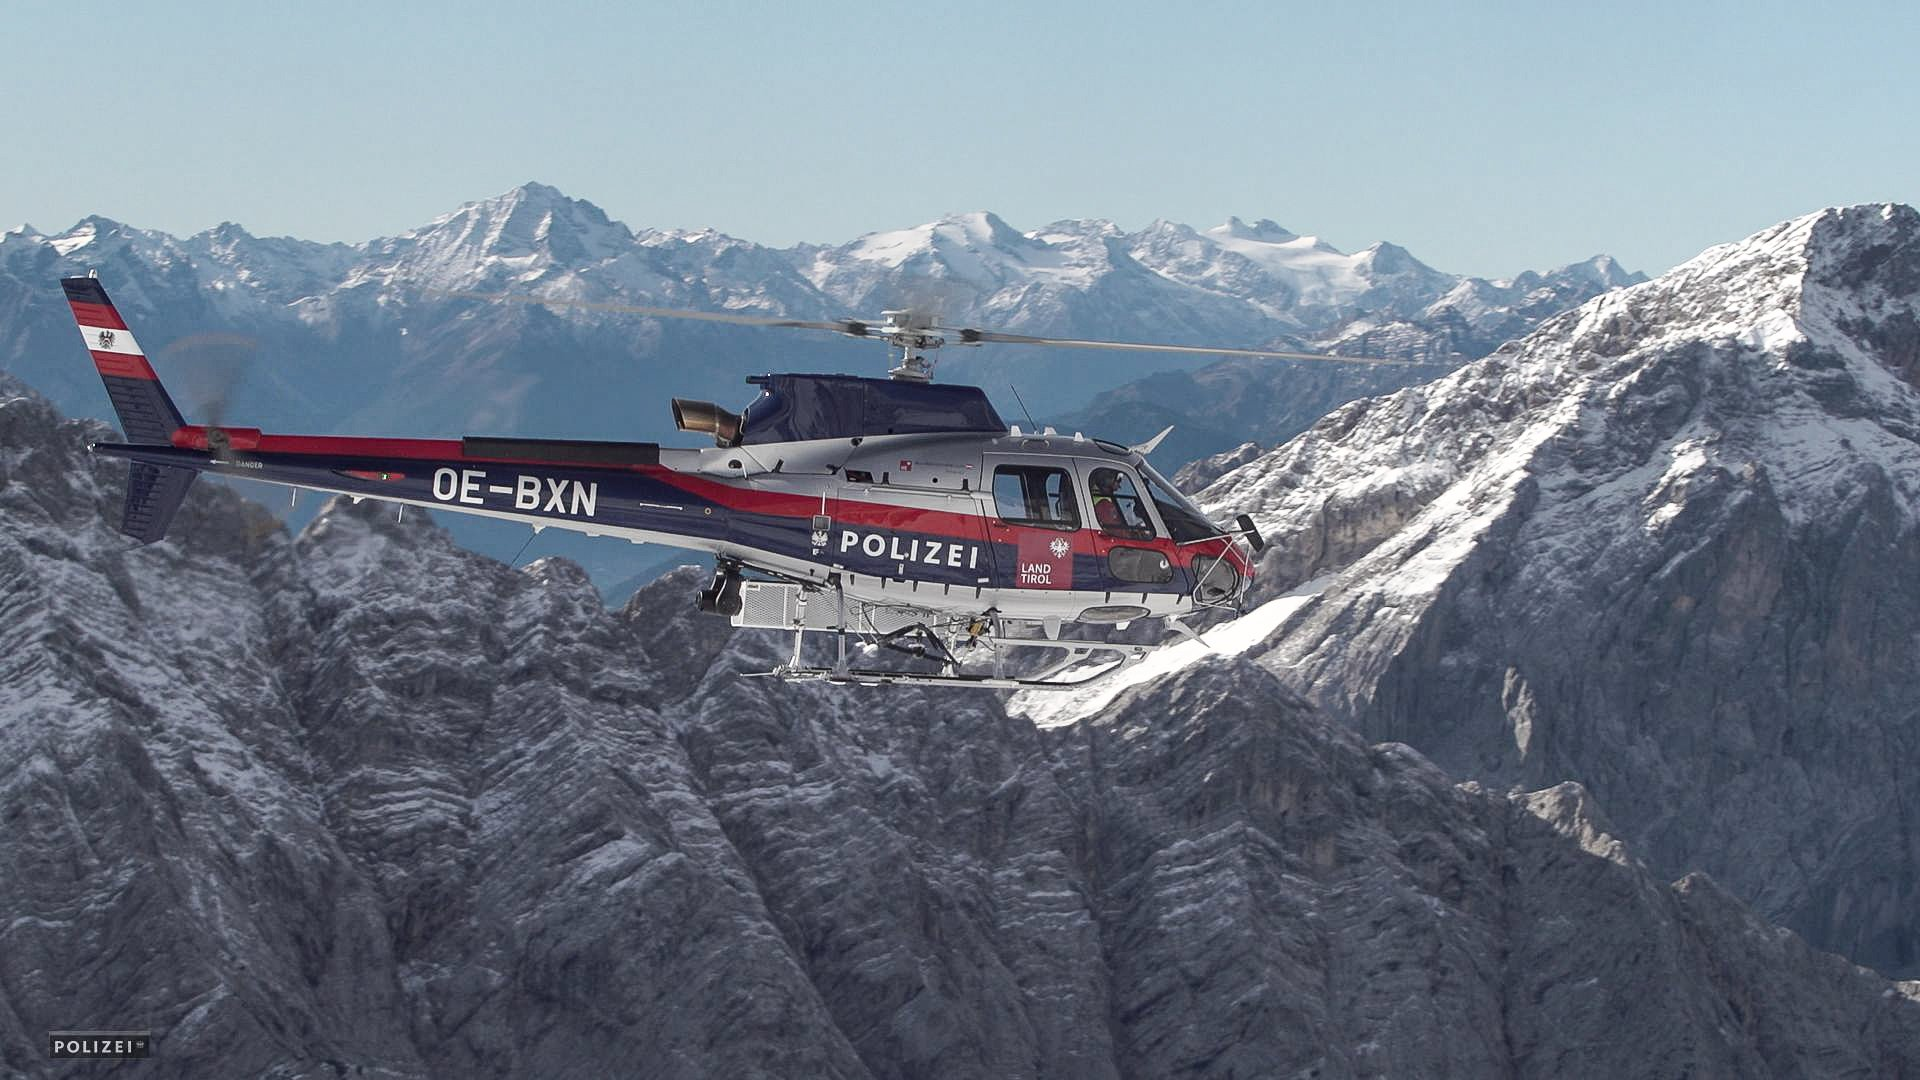 Austria's Ministry of the Interior (BMI) has formally introduced into